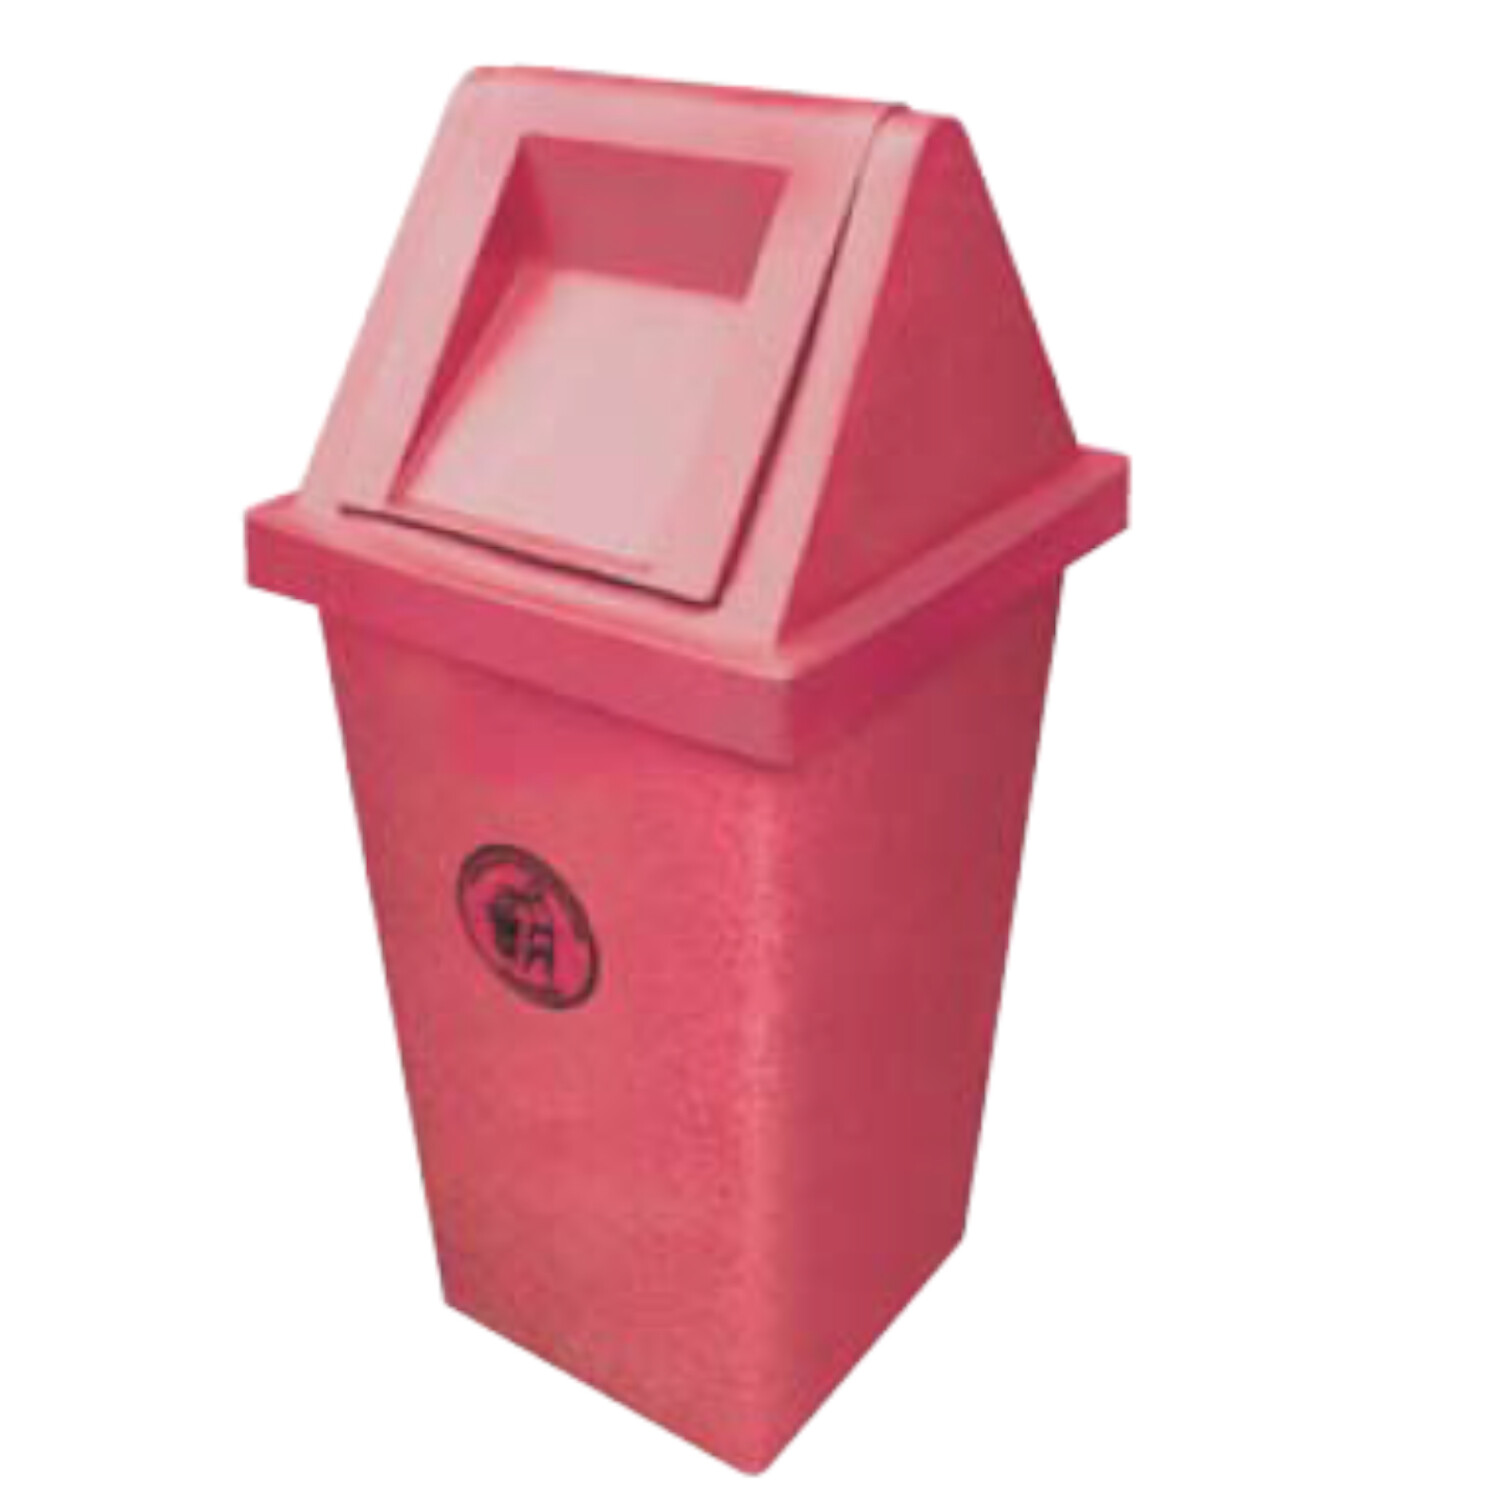 Rivershop 50Liters Multi-Purpose Everest Polyethylene Garbage Wastebin Dustbin Rubbish Trash for Home / Office / Restaurant / Commercial Tong Sampah Serbaguna